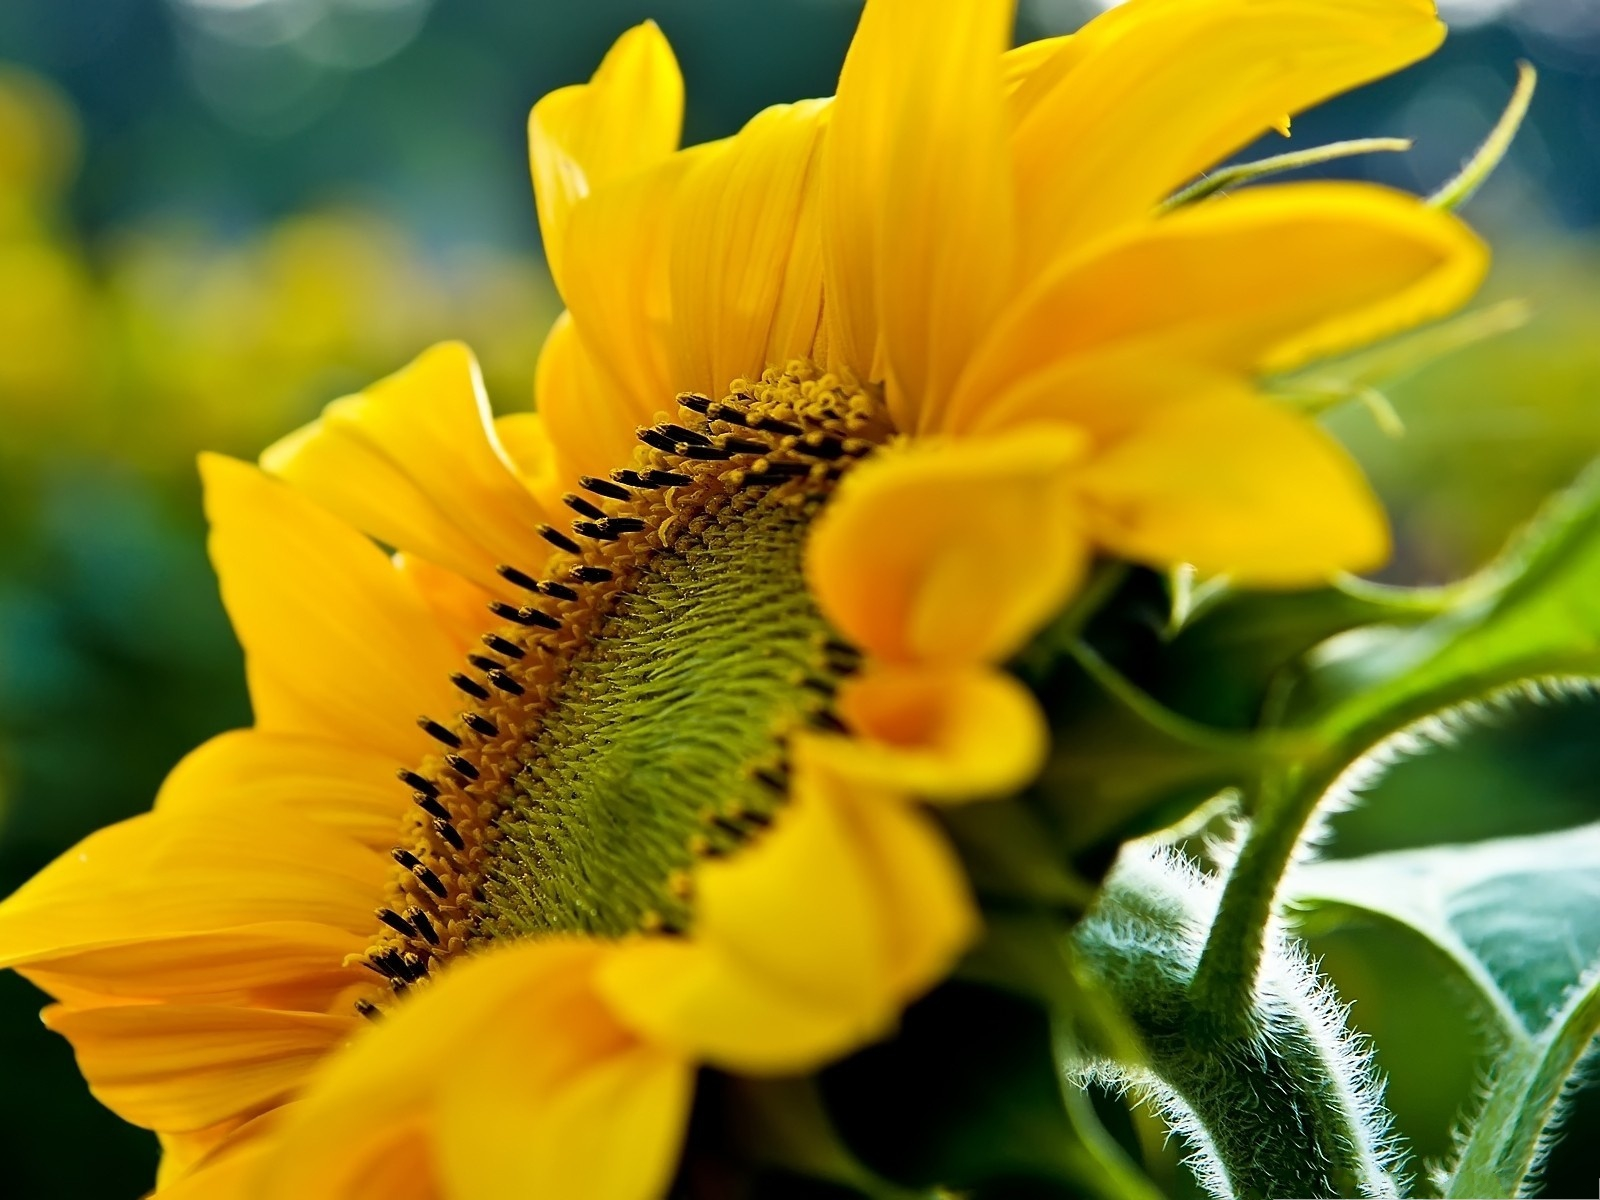 click to free download the wallpaper--Sunflowers Photography, Sunflower Under Macro Focus, Smile and Be Optimistic 1600X1200 free wallpaper download